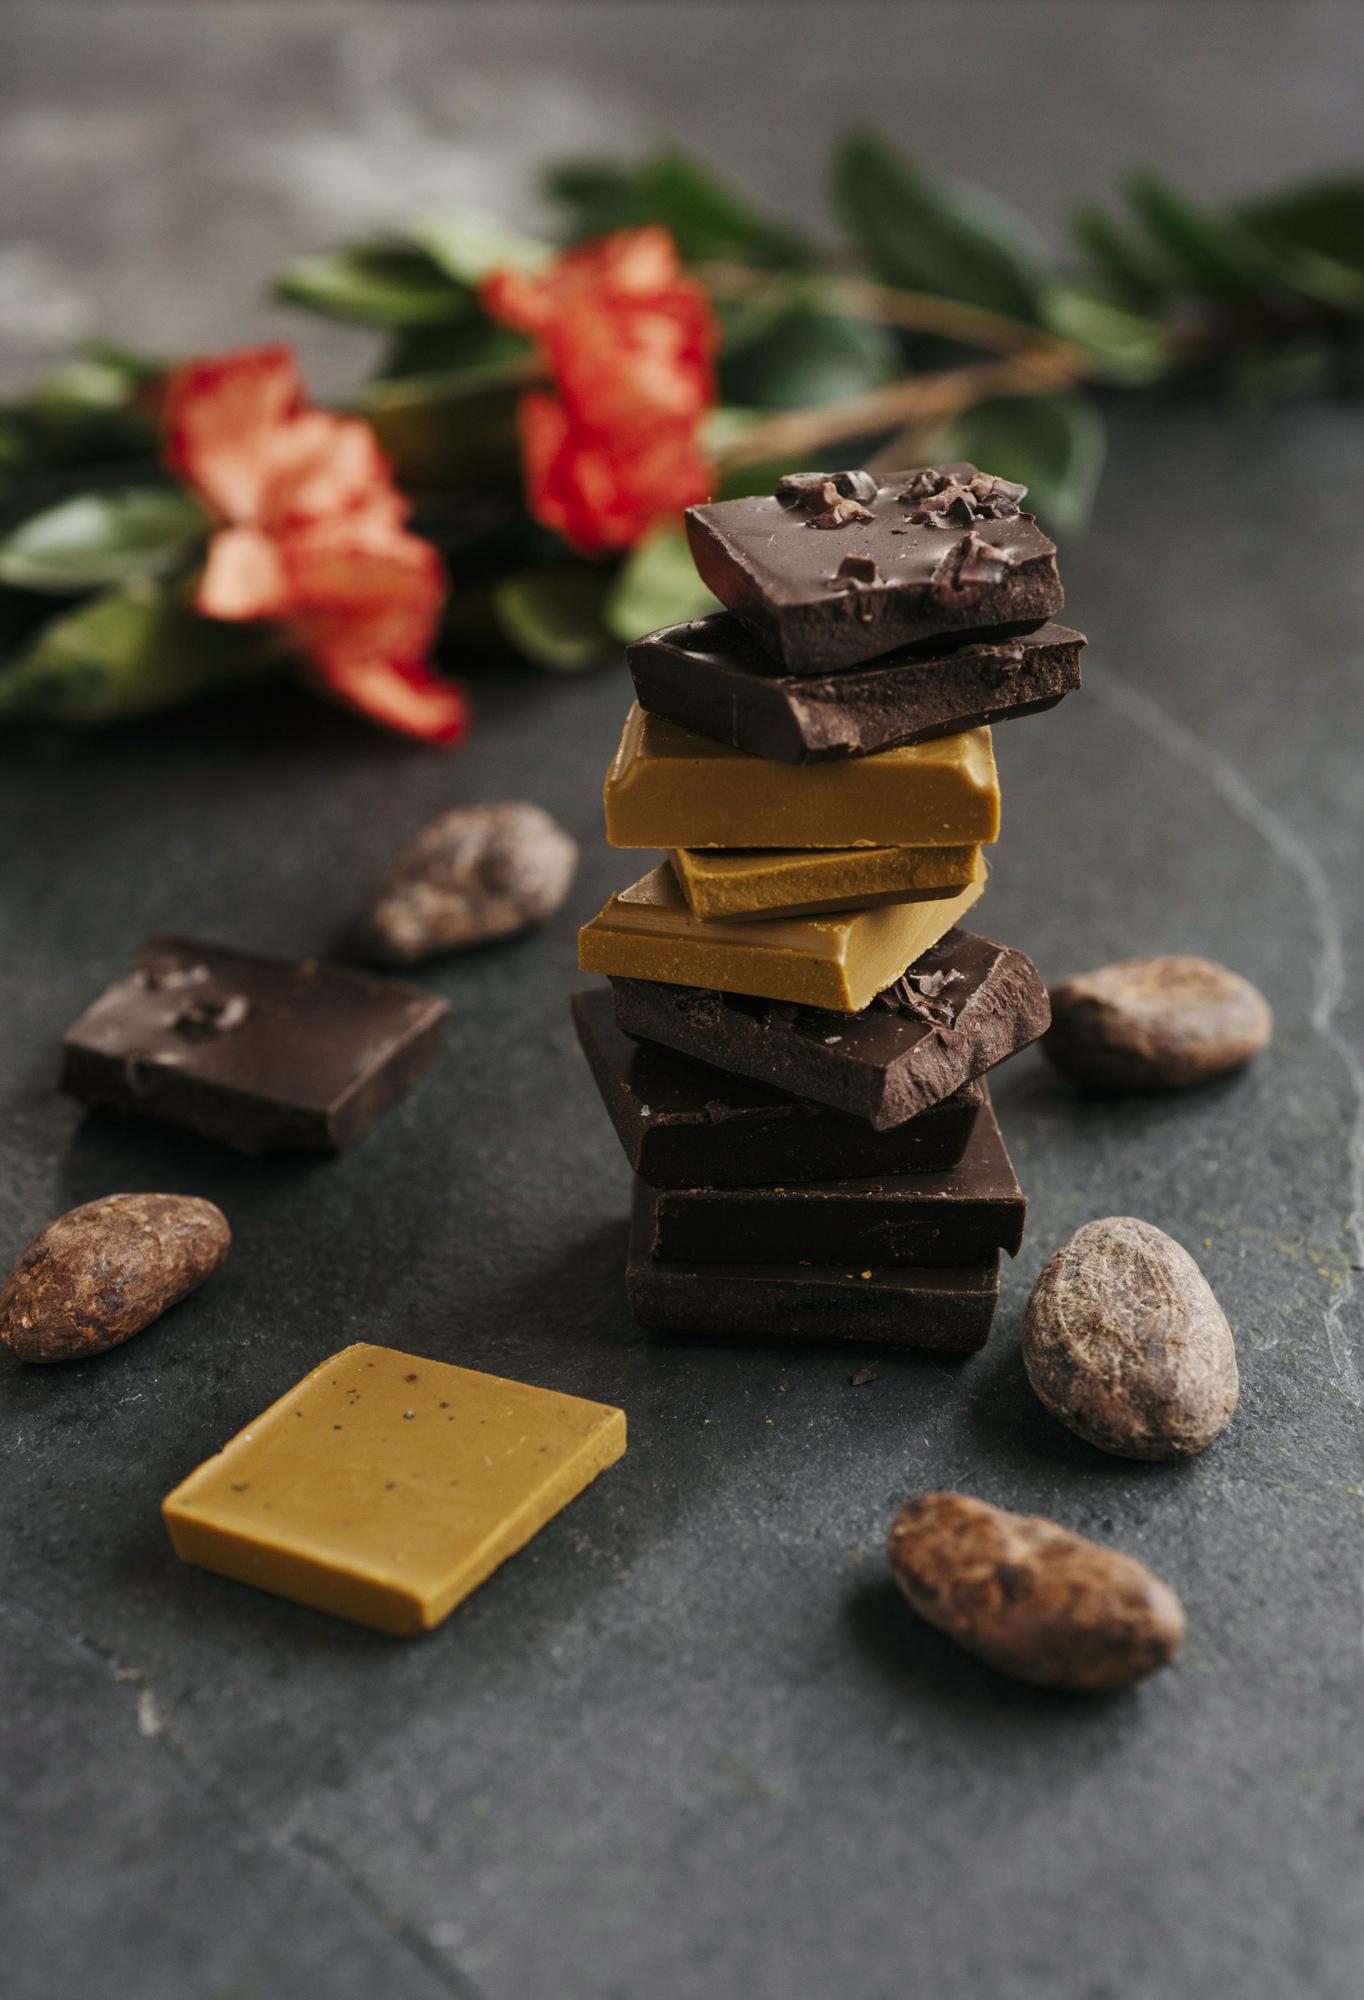 stacked fair trade chocolate and cacao beans